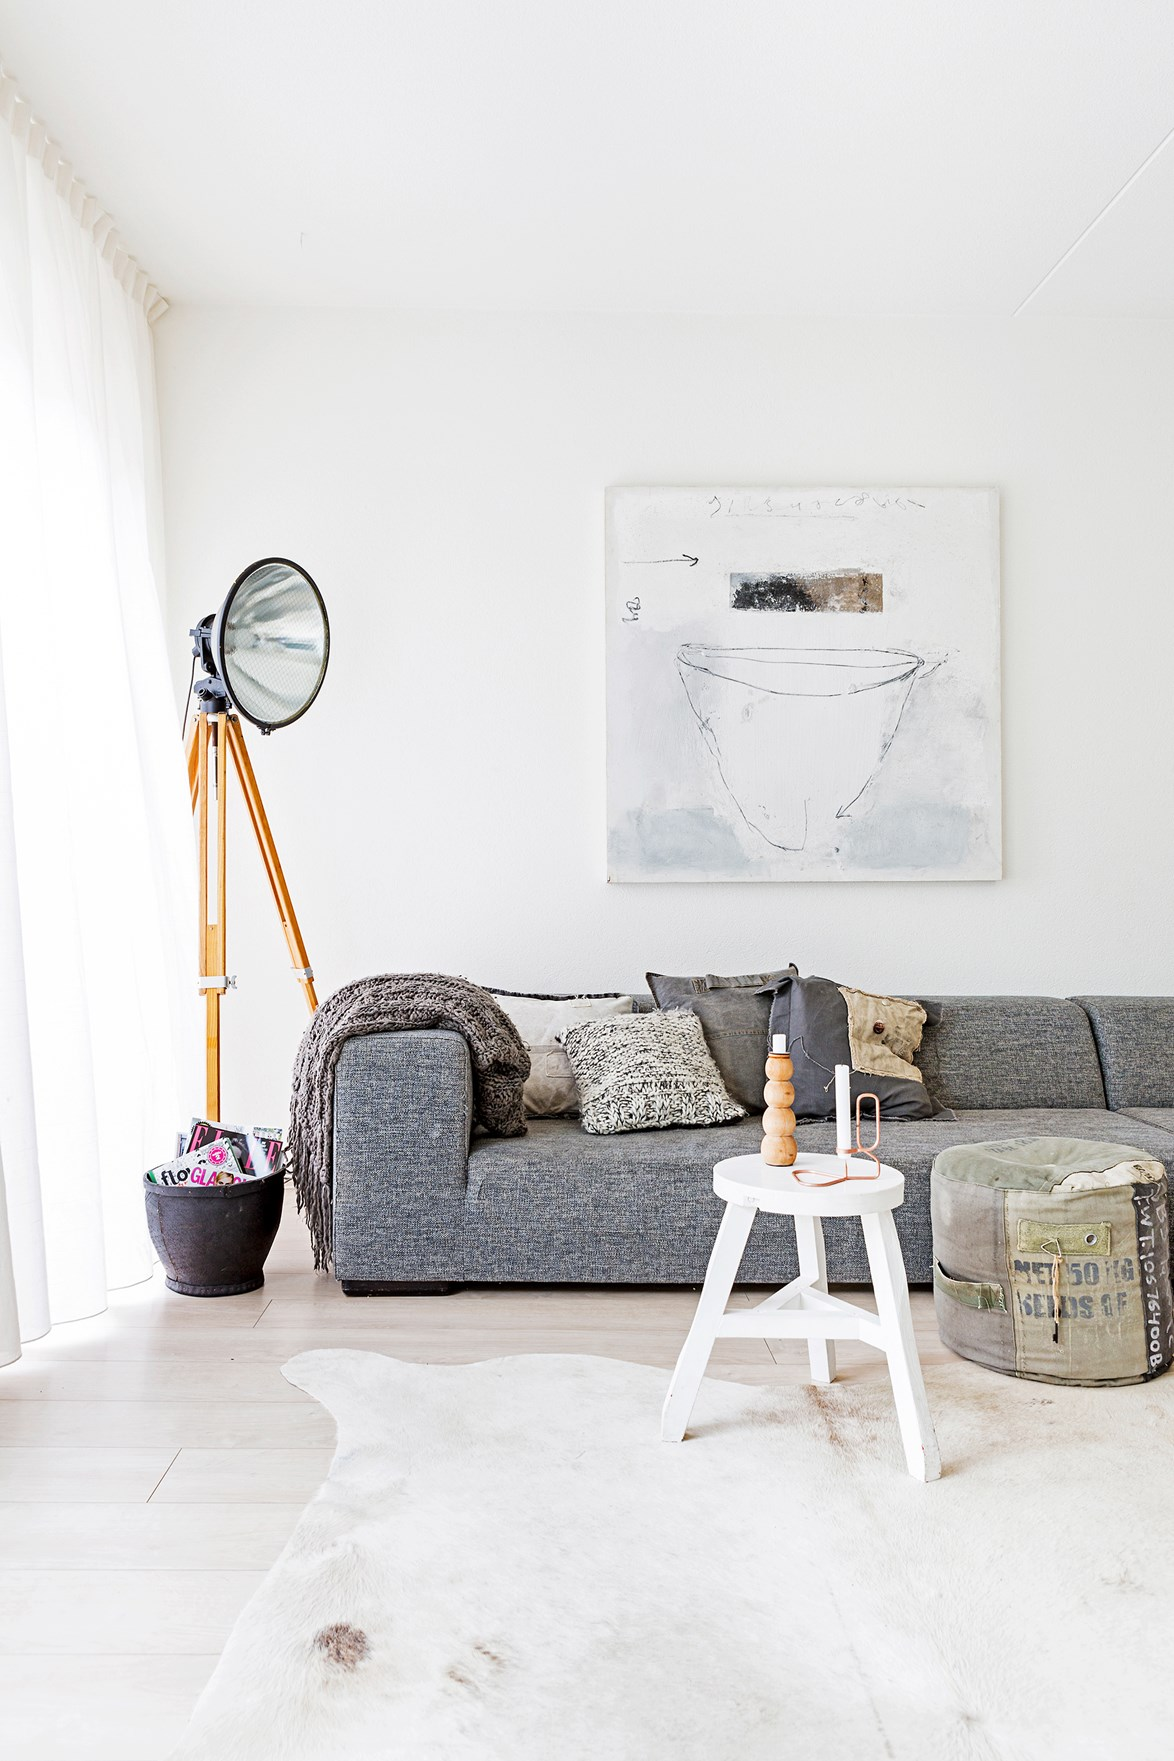 A hide rug adds texture and warmth to this all-white living room. *Photo:* Hans Mossel/ *Idecorimages.com*